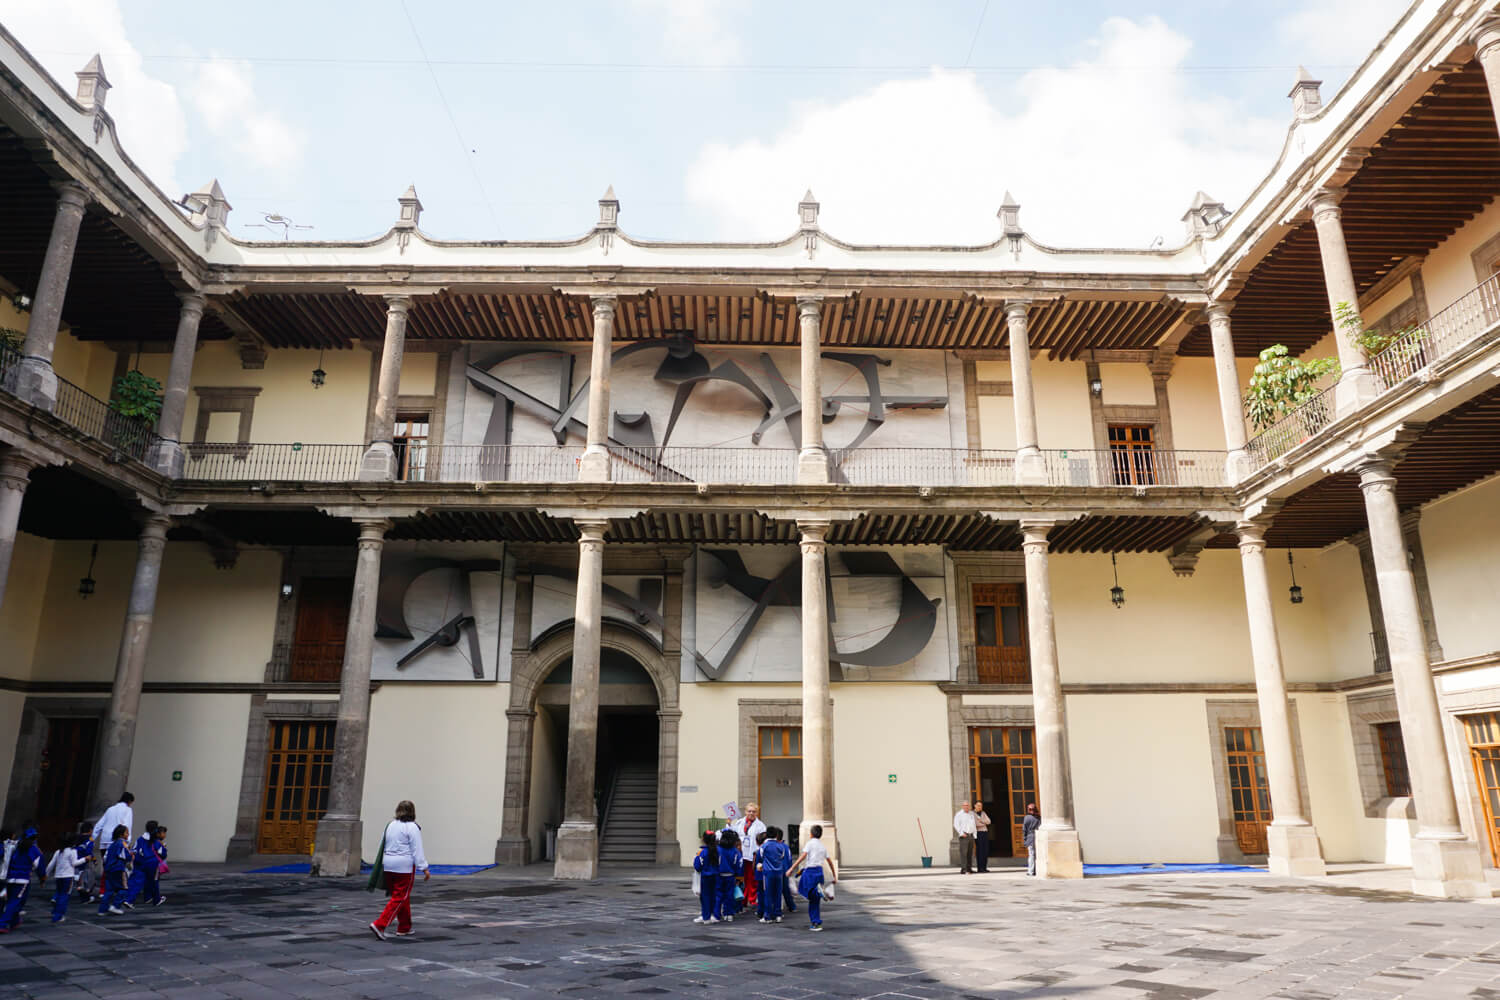 What to do in Mexico City: Visit the Secretaria de Educacion Publica (Secratary of Public Education Building)